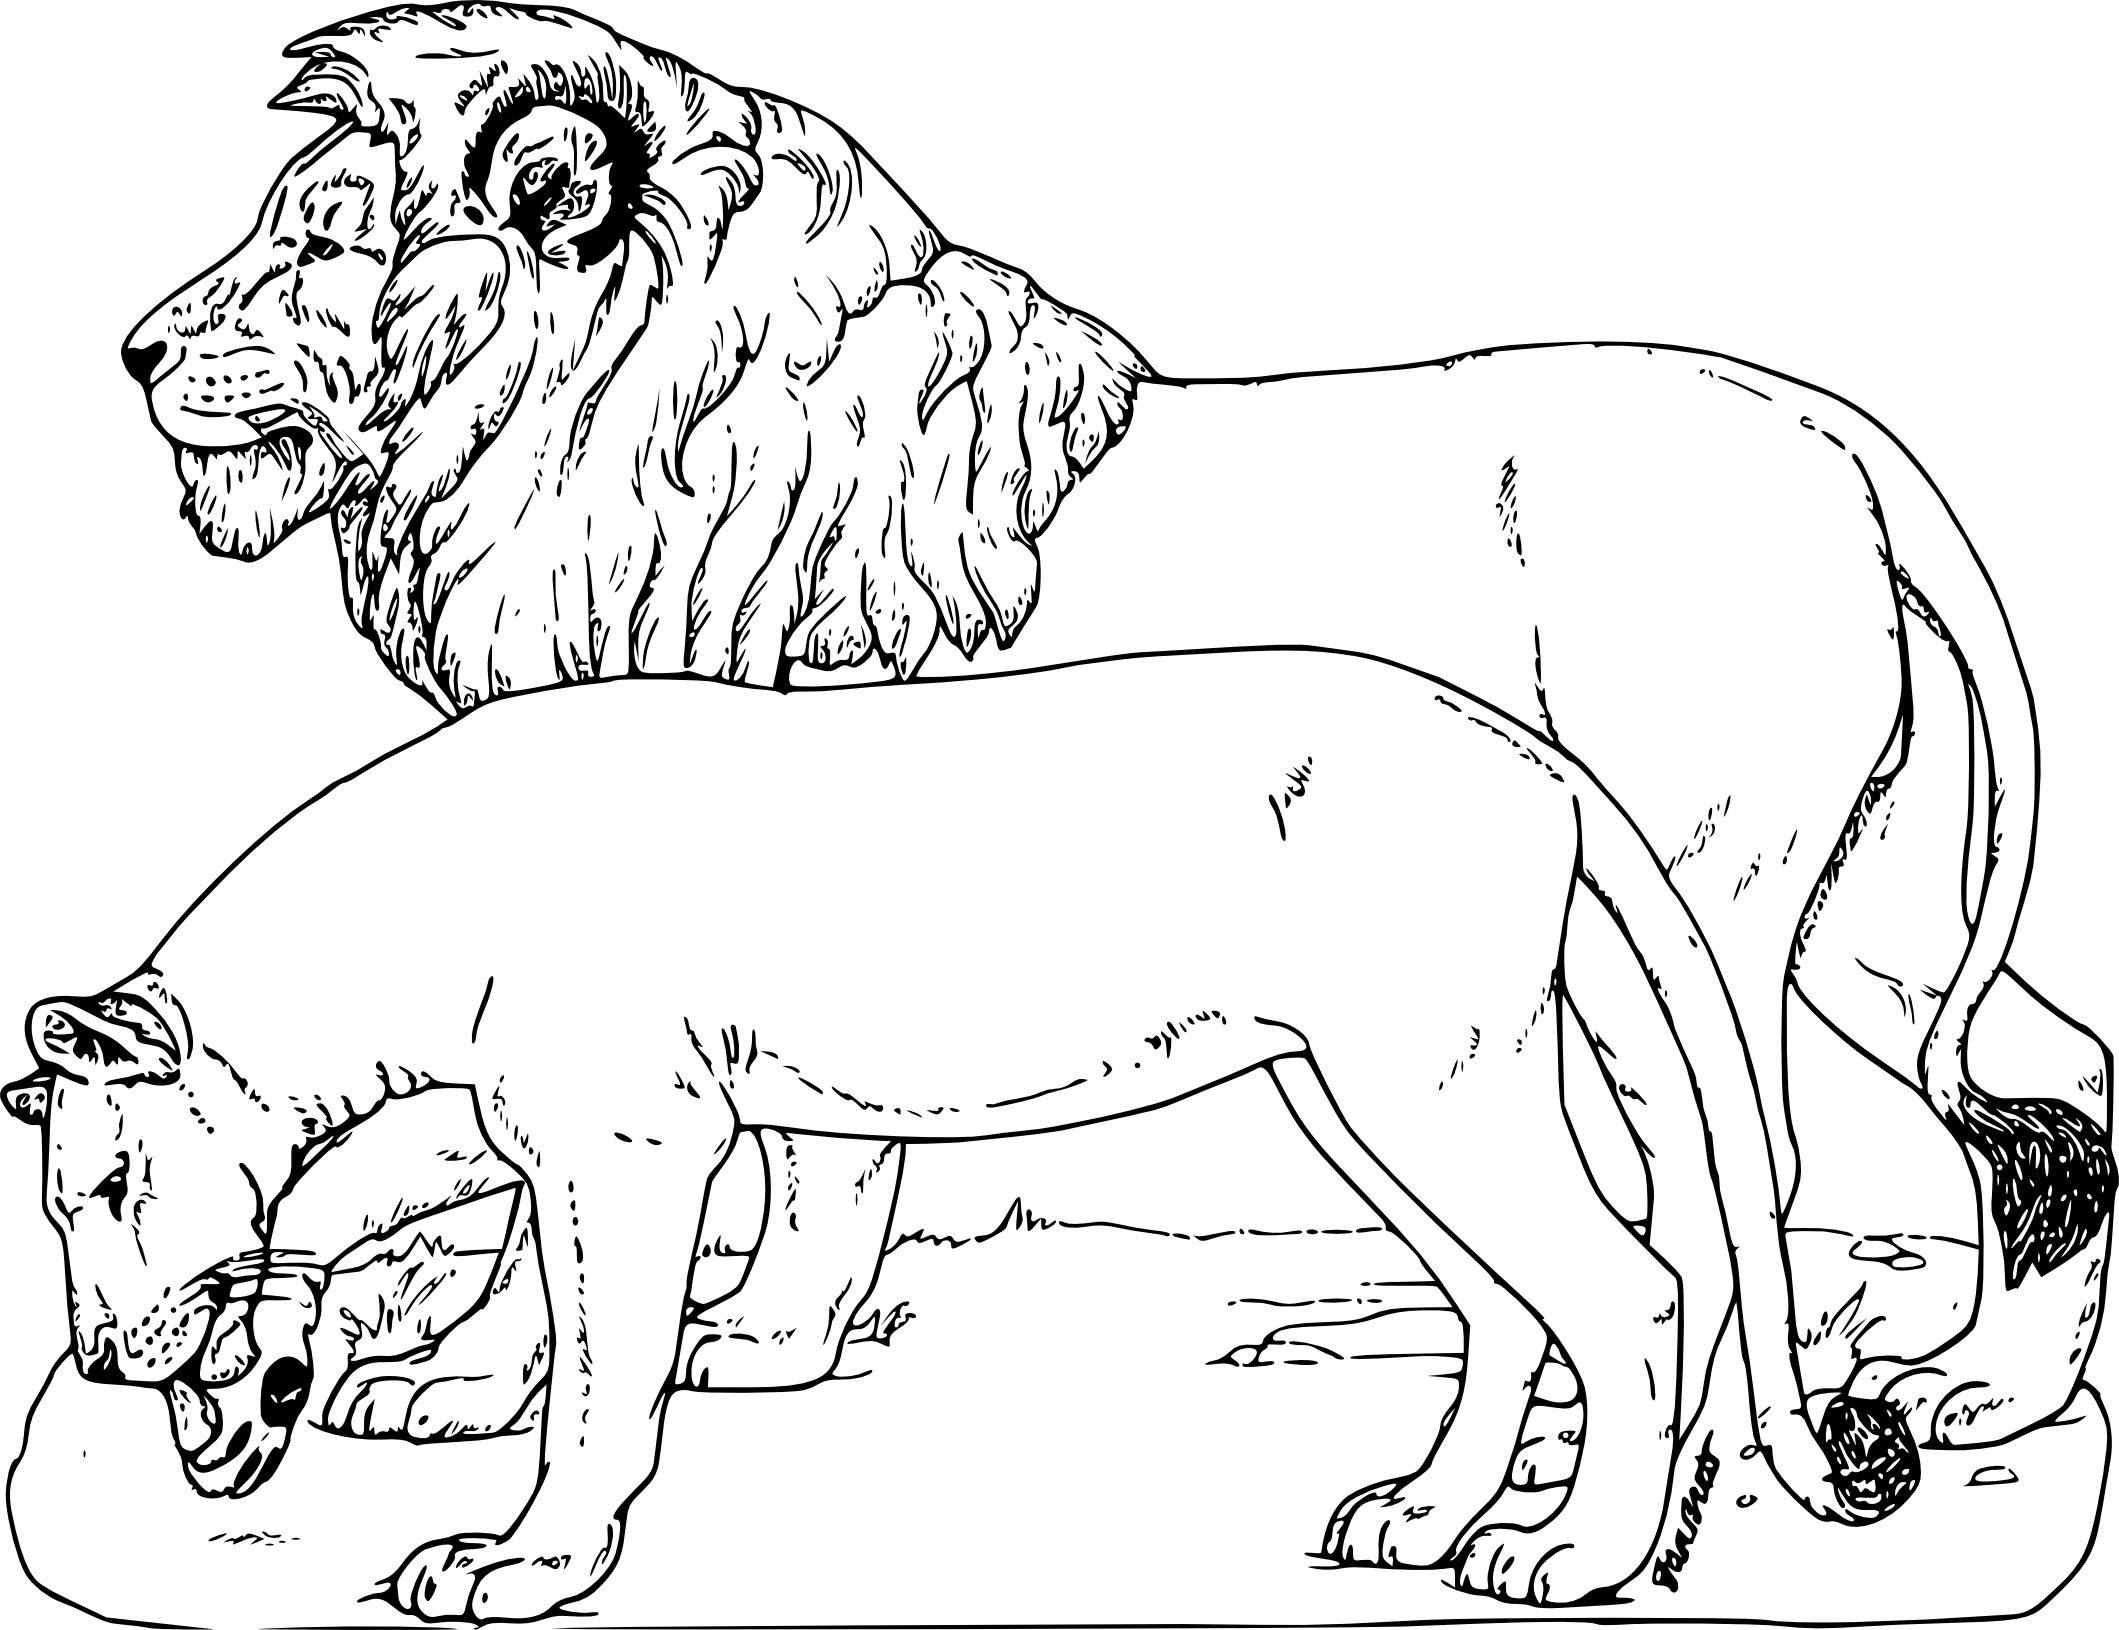 coloriageanimauxsauvageslion